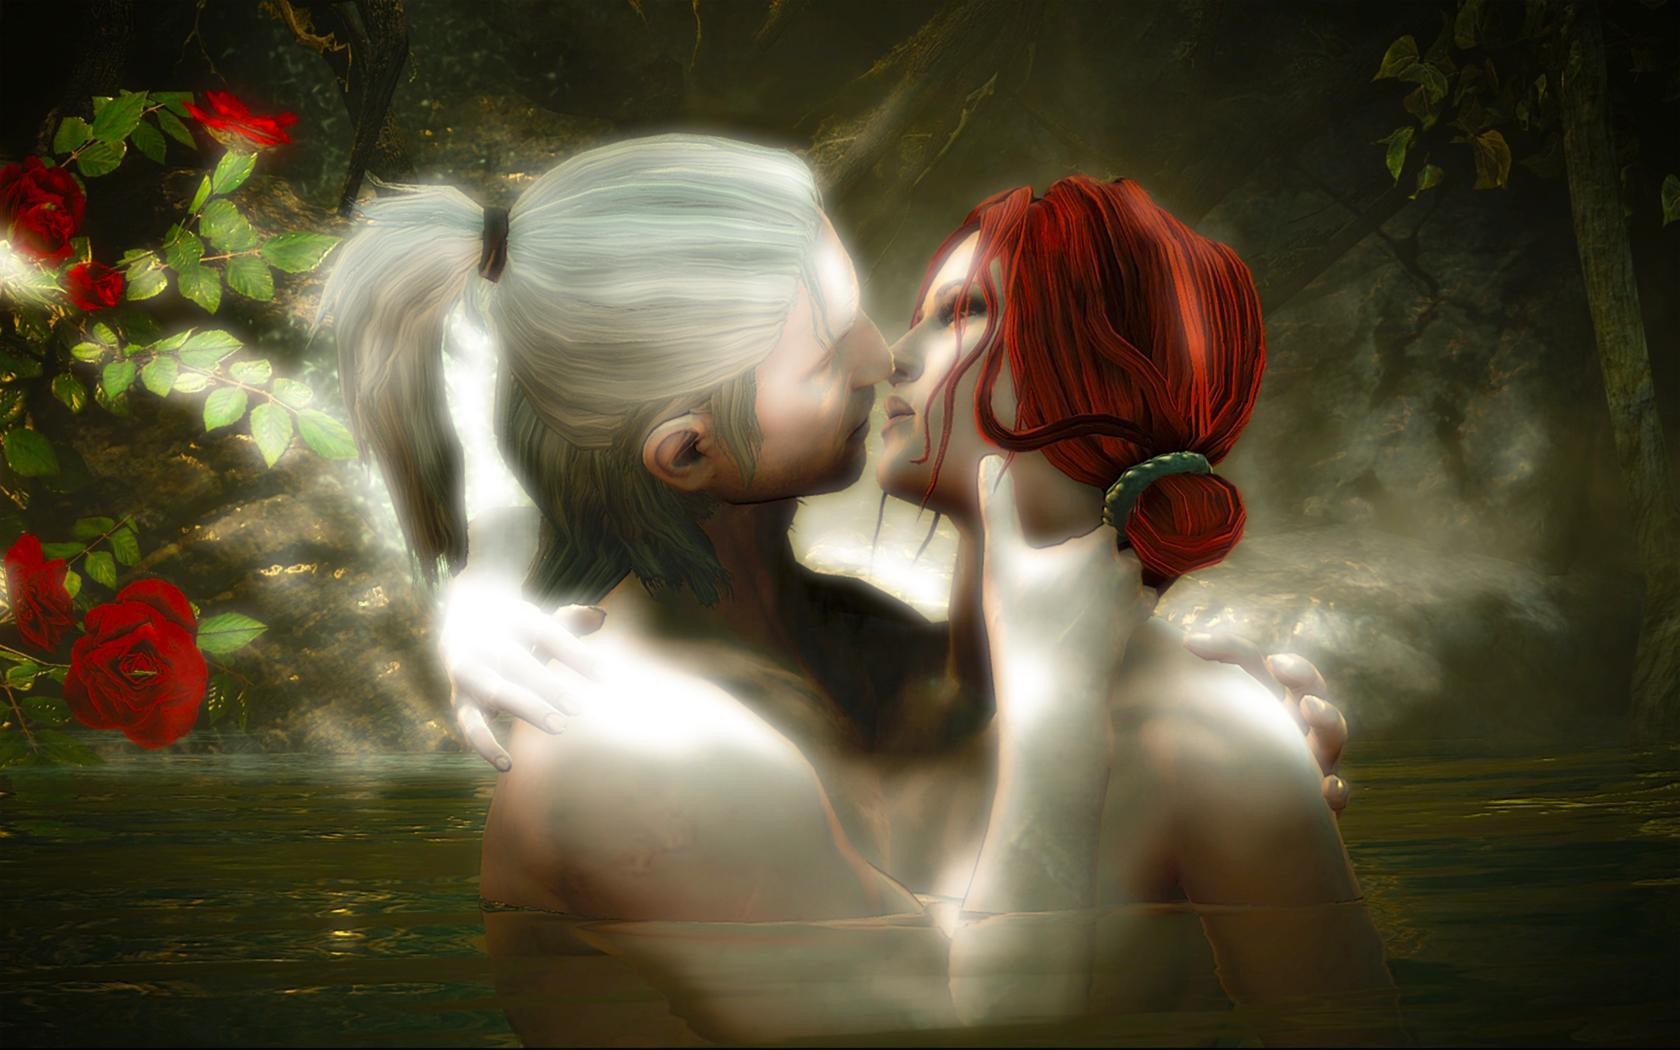 Fantasy Love Wallpaper Background : THE WITcHER fantasy warrior mood love g wallpaper 1680x1050 152141 WallpaperUP